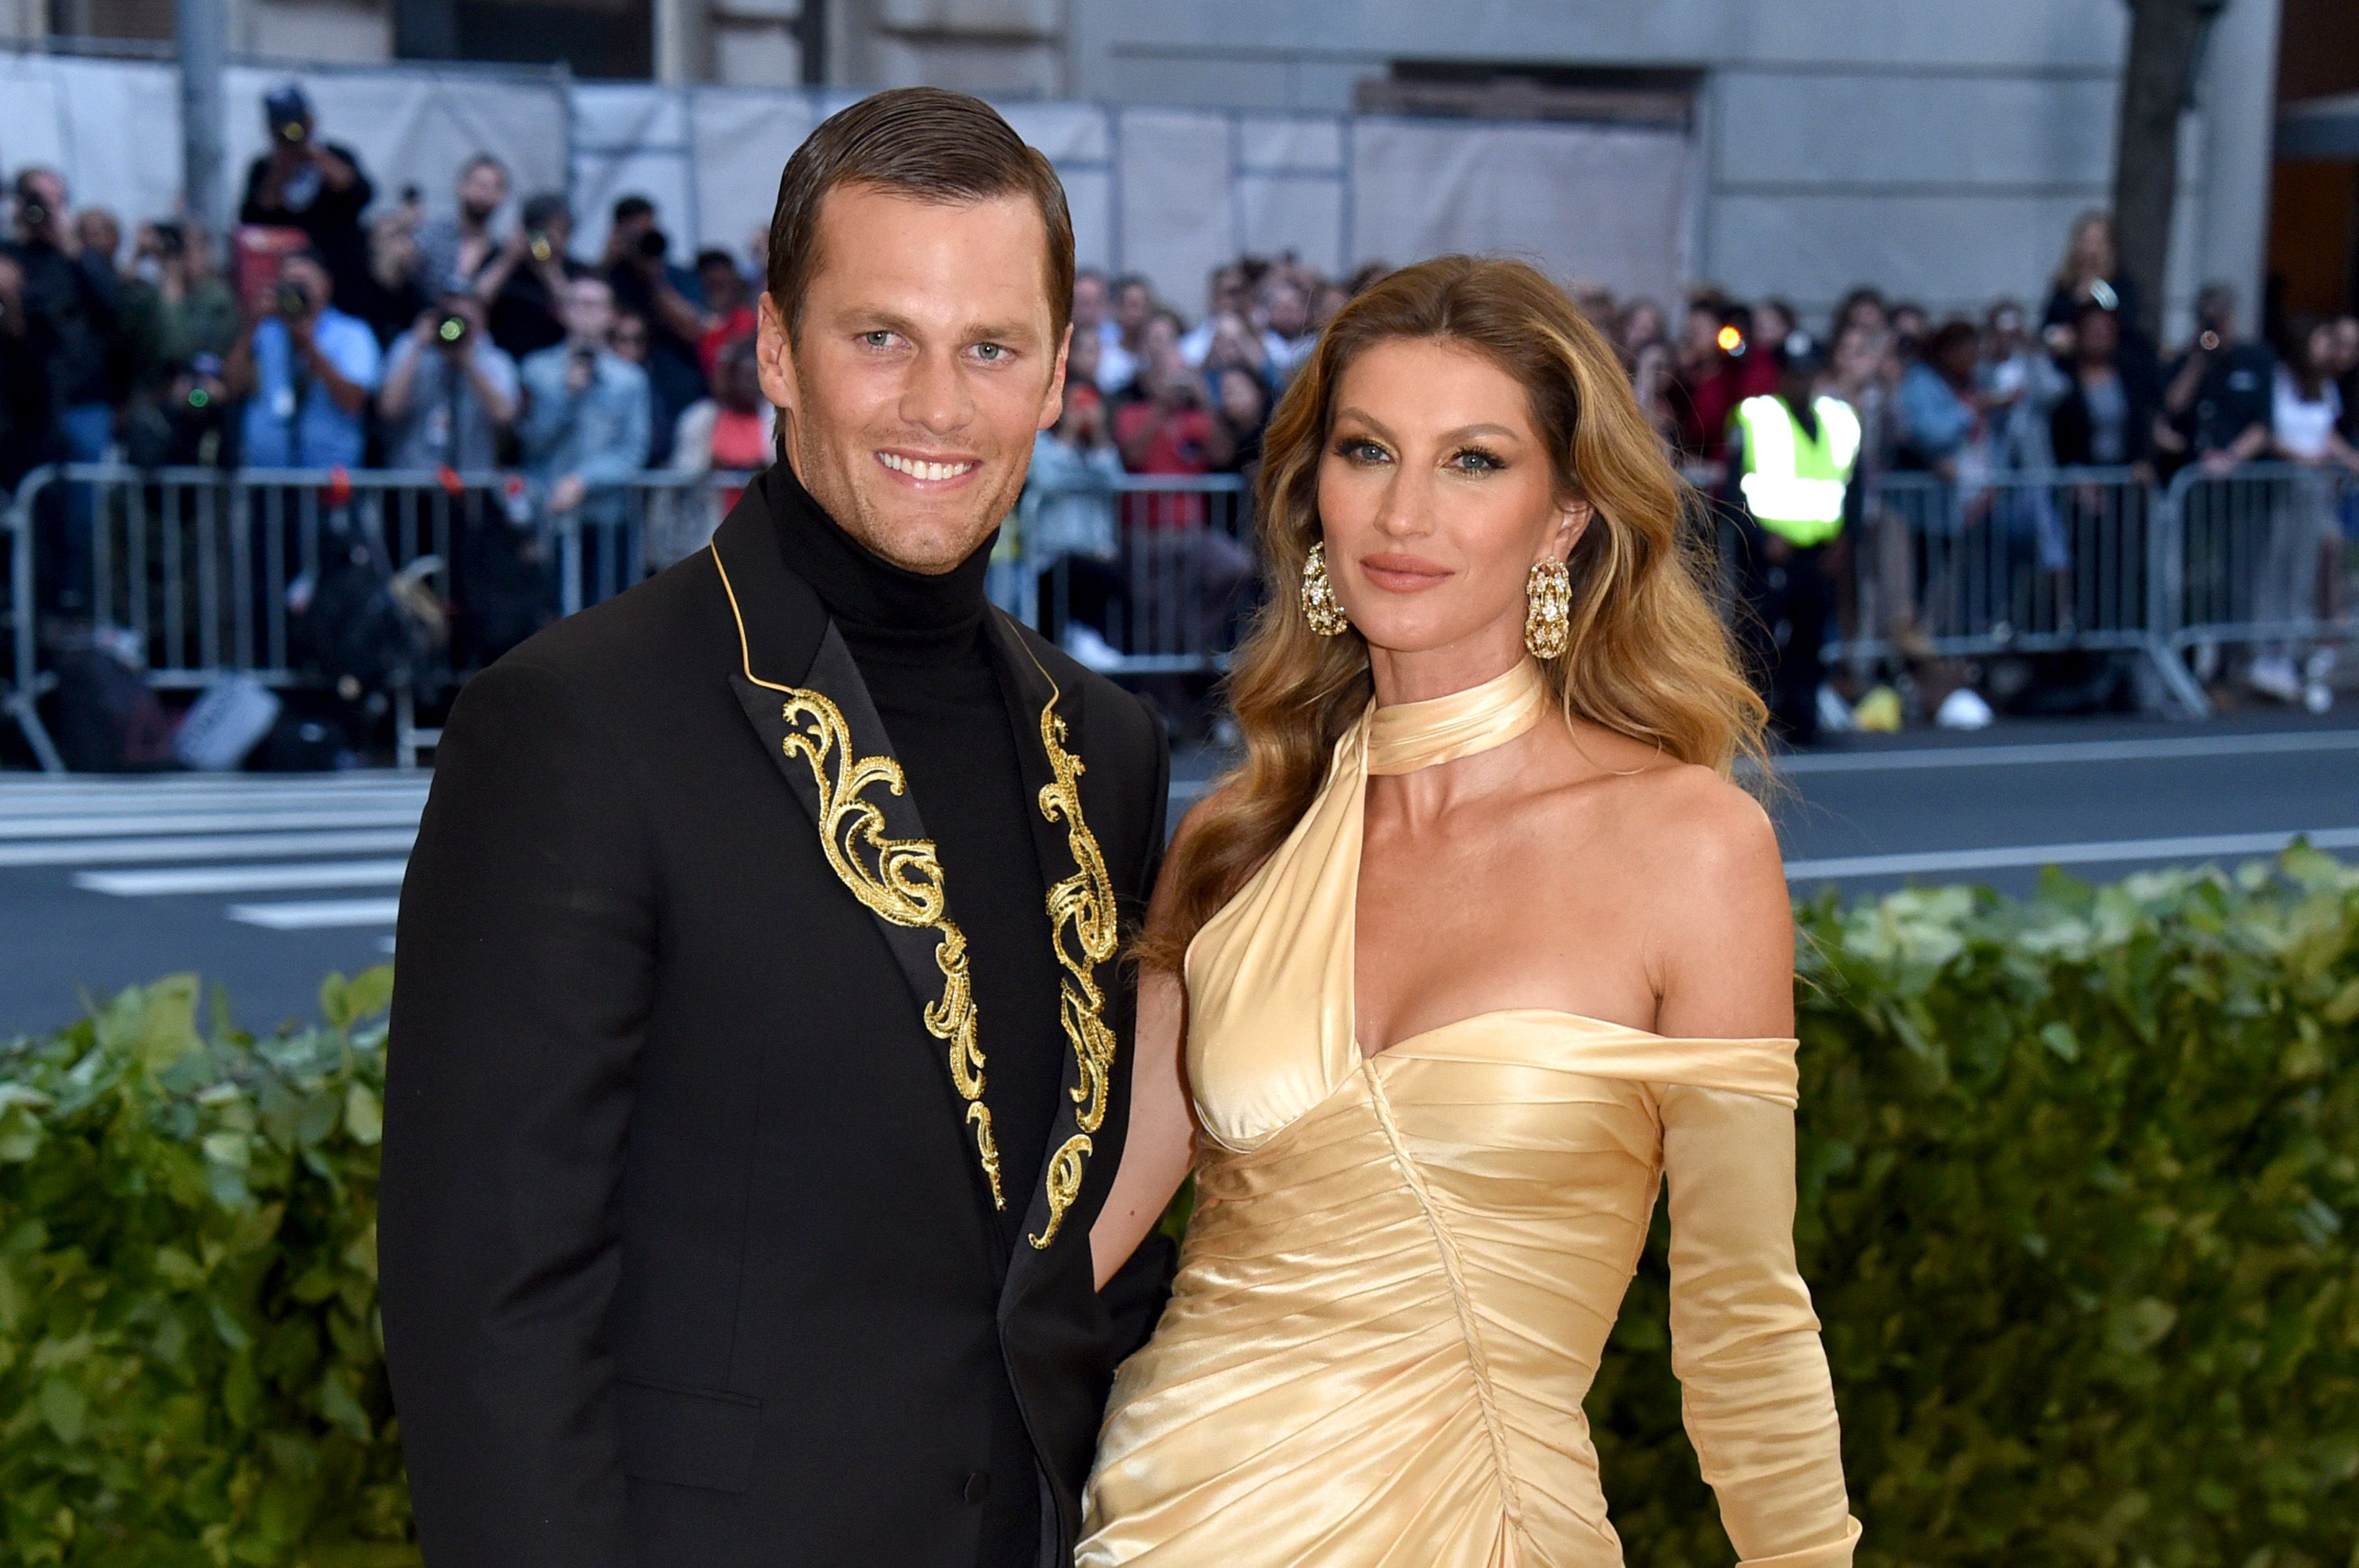 f0163fc5216a Tom Brady and Gisele Bundchen s Relationship Is Full of Ups and Downs